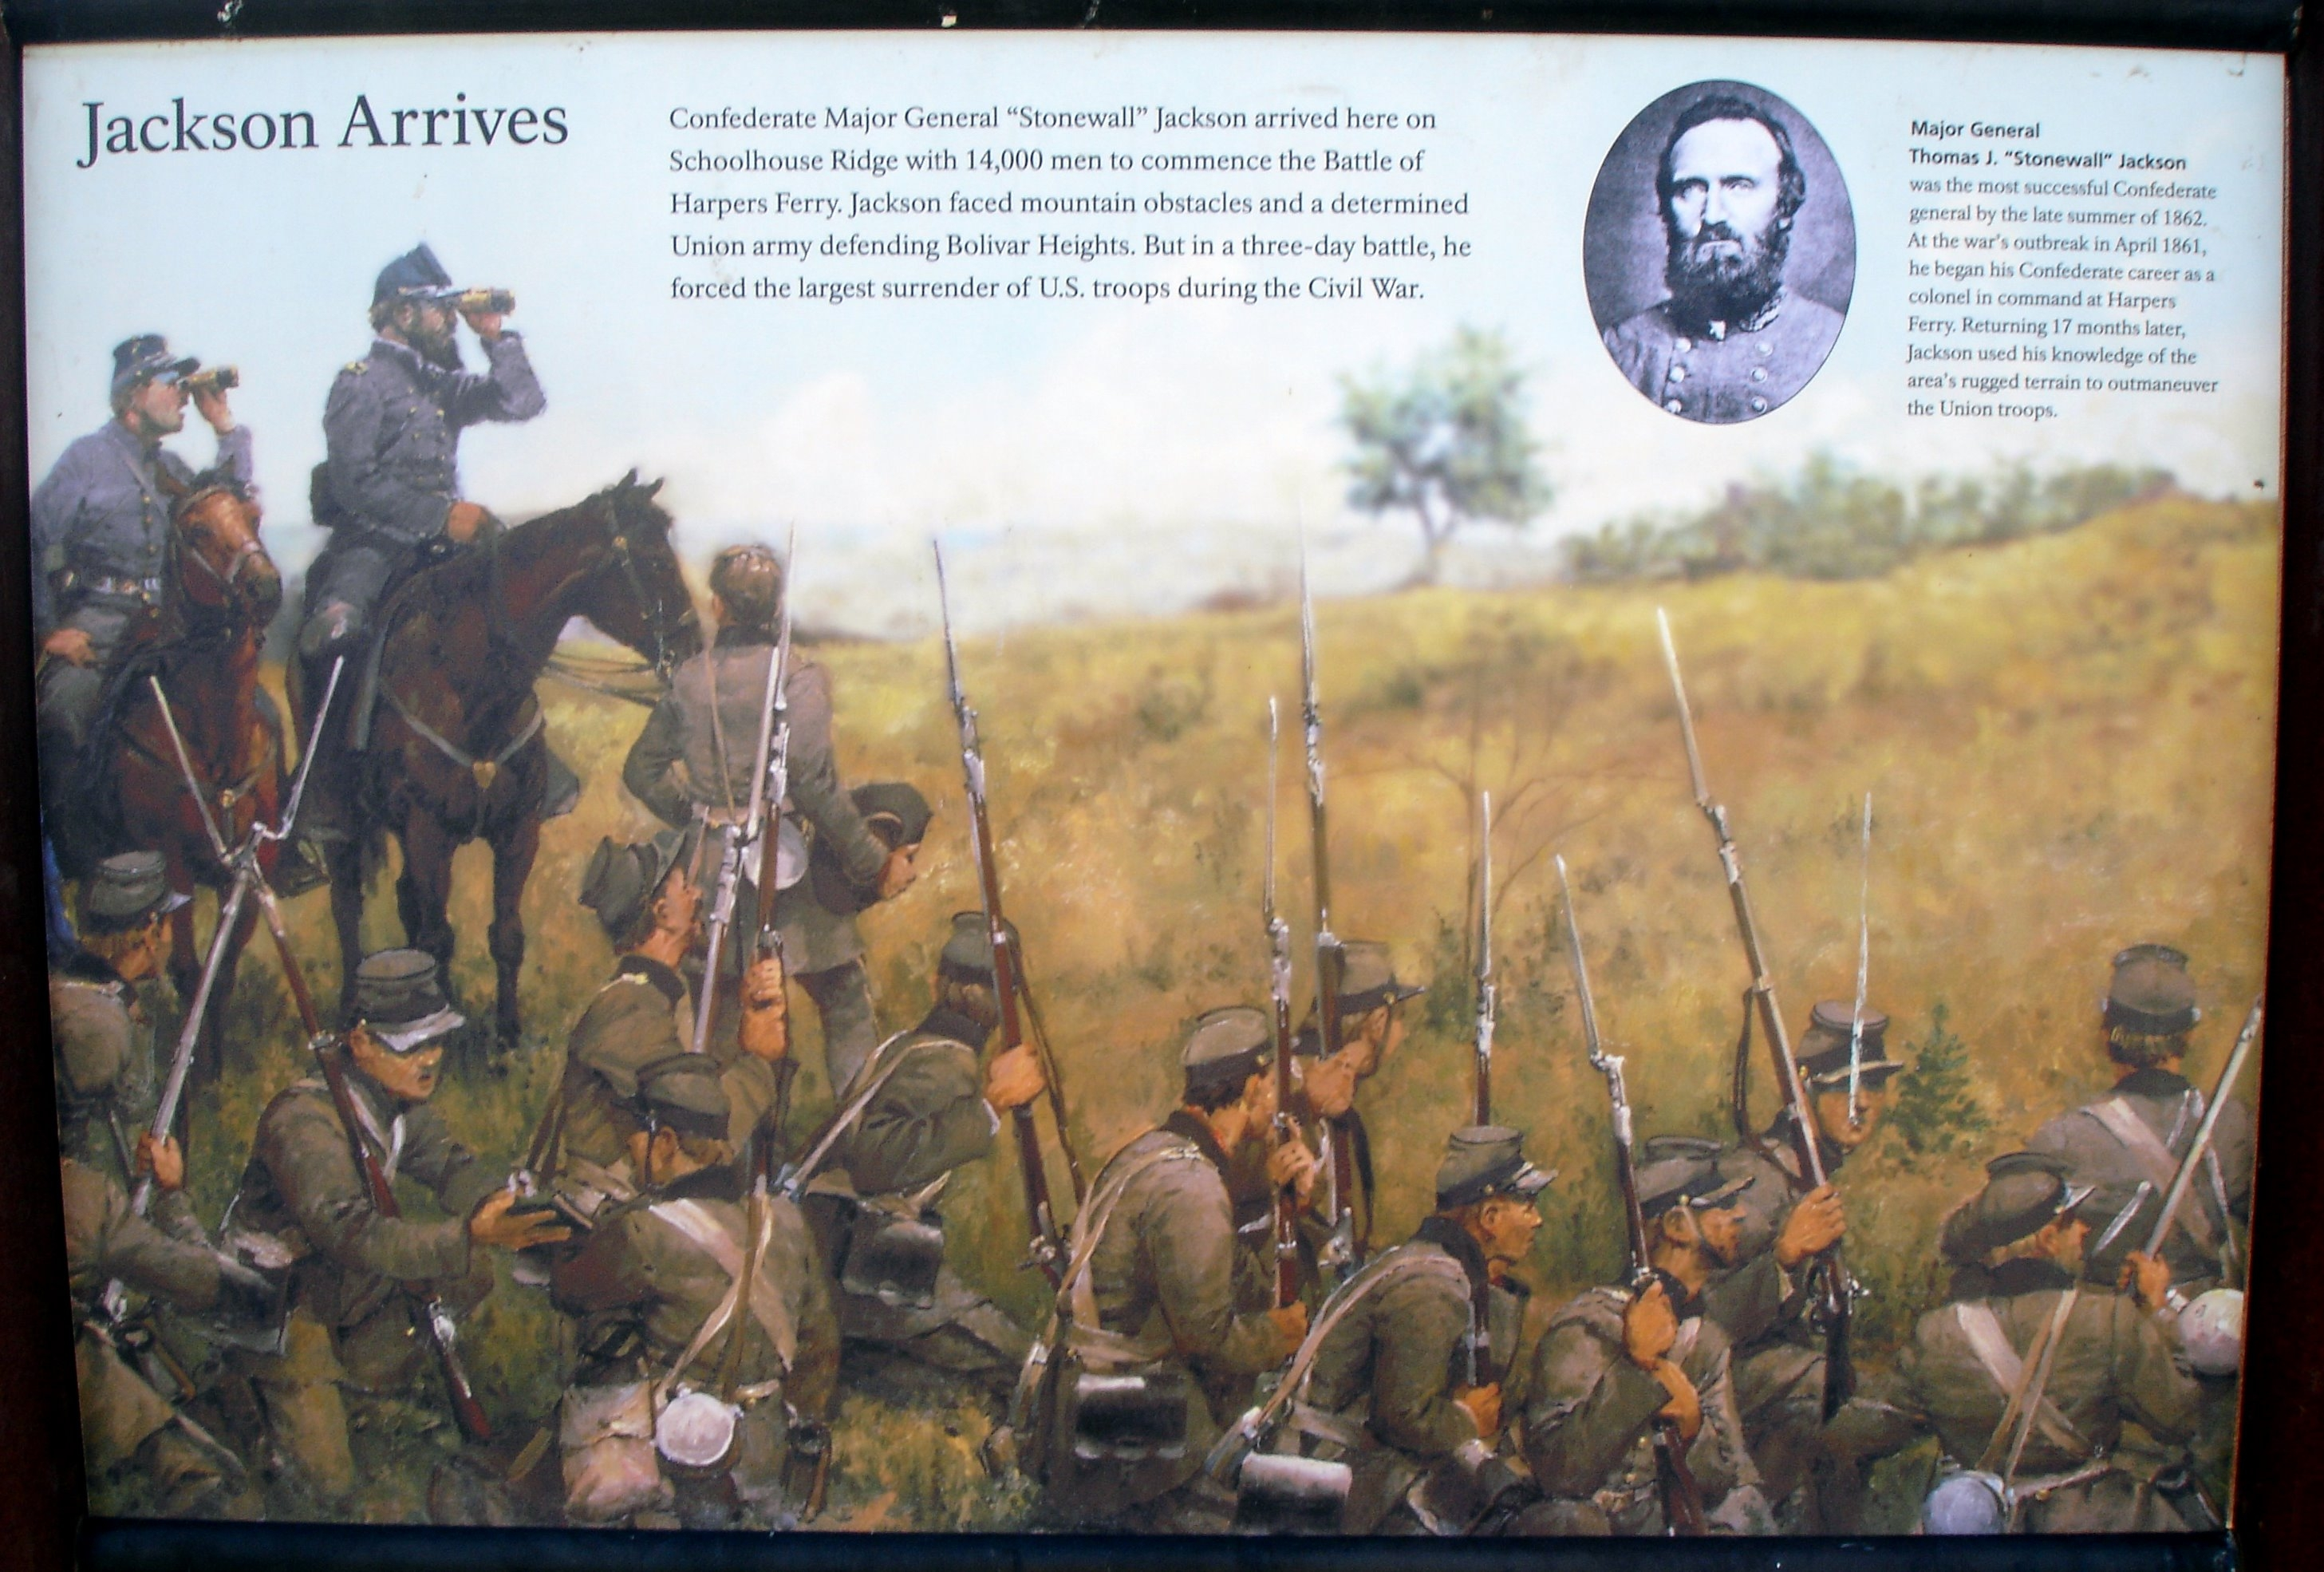 a biography of thomas stonewall jackson a confederate general during the civil war The confederate general stonewall jackson was was a war hero and one of the south's most successful generals during the american civil war thomas jackson.